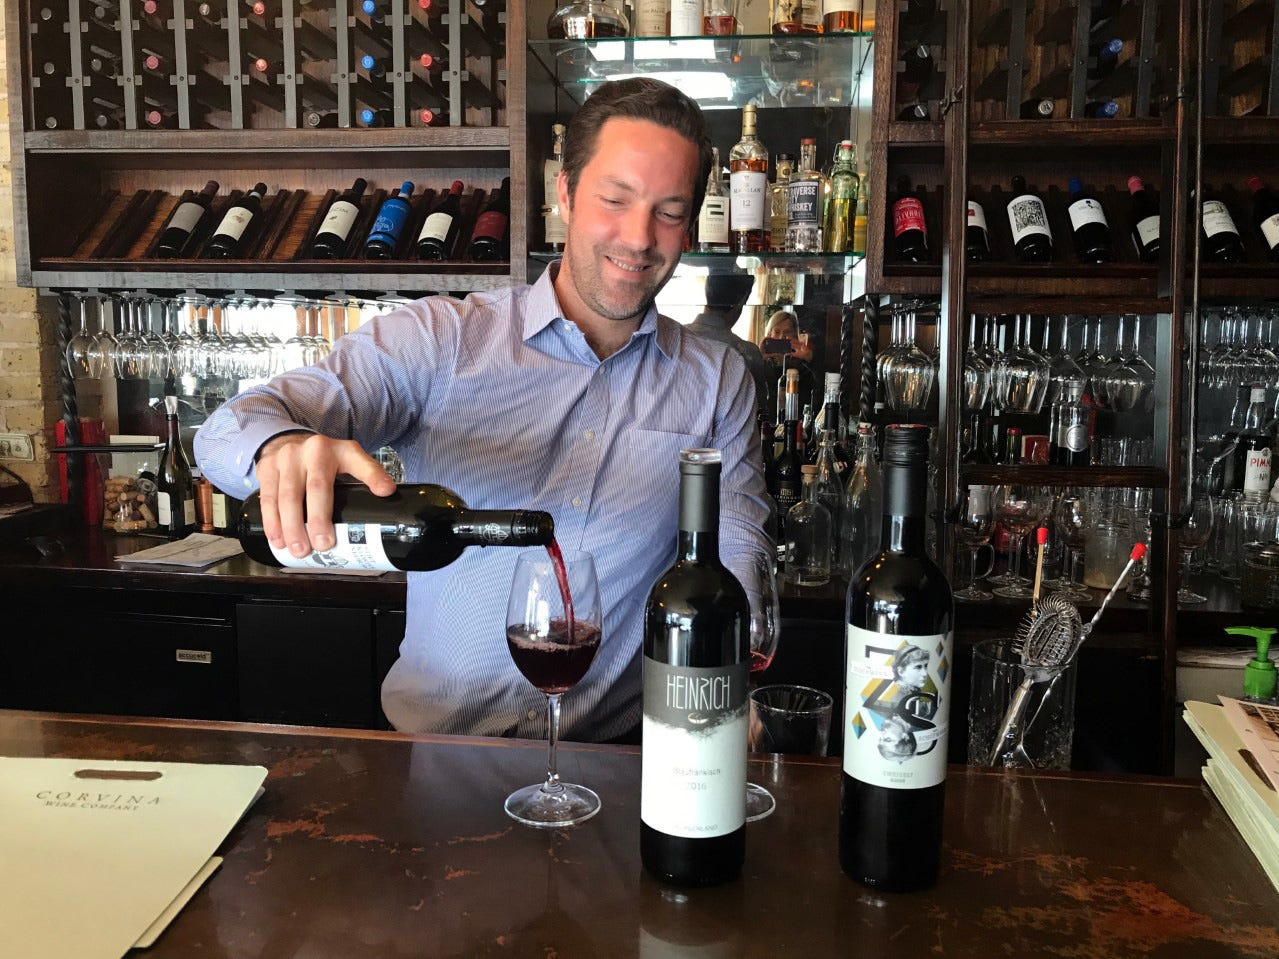 Frank LaSusa of Corvina Wine Company in West Allis pours a flight of Austrian reds.